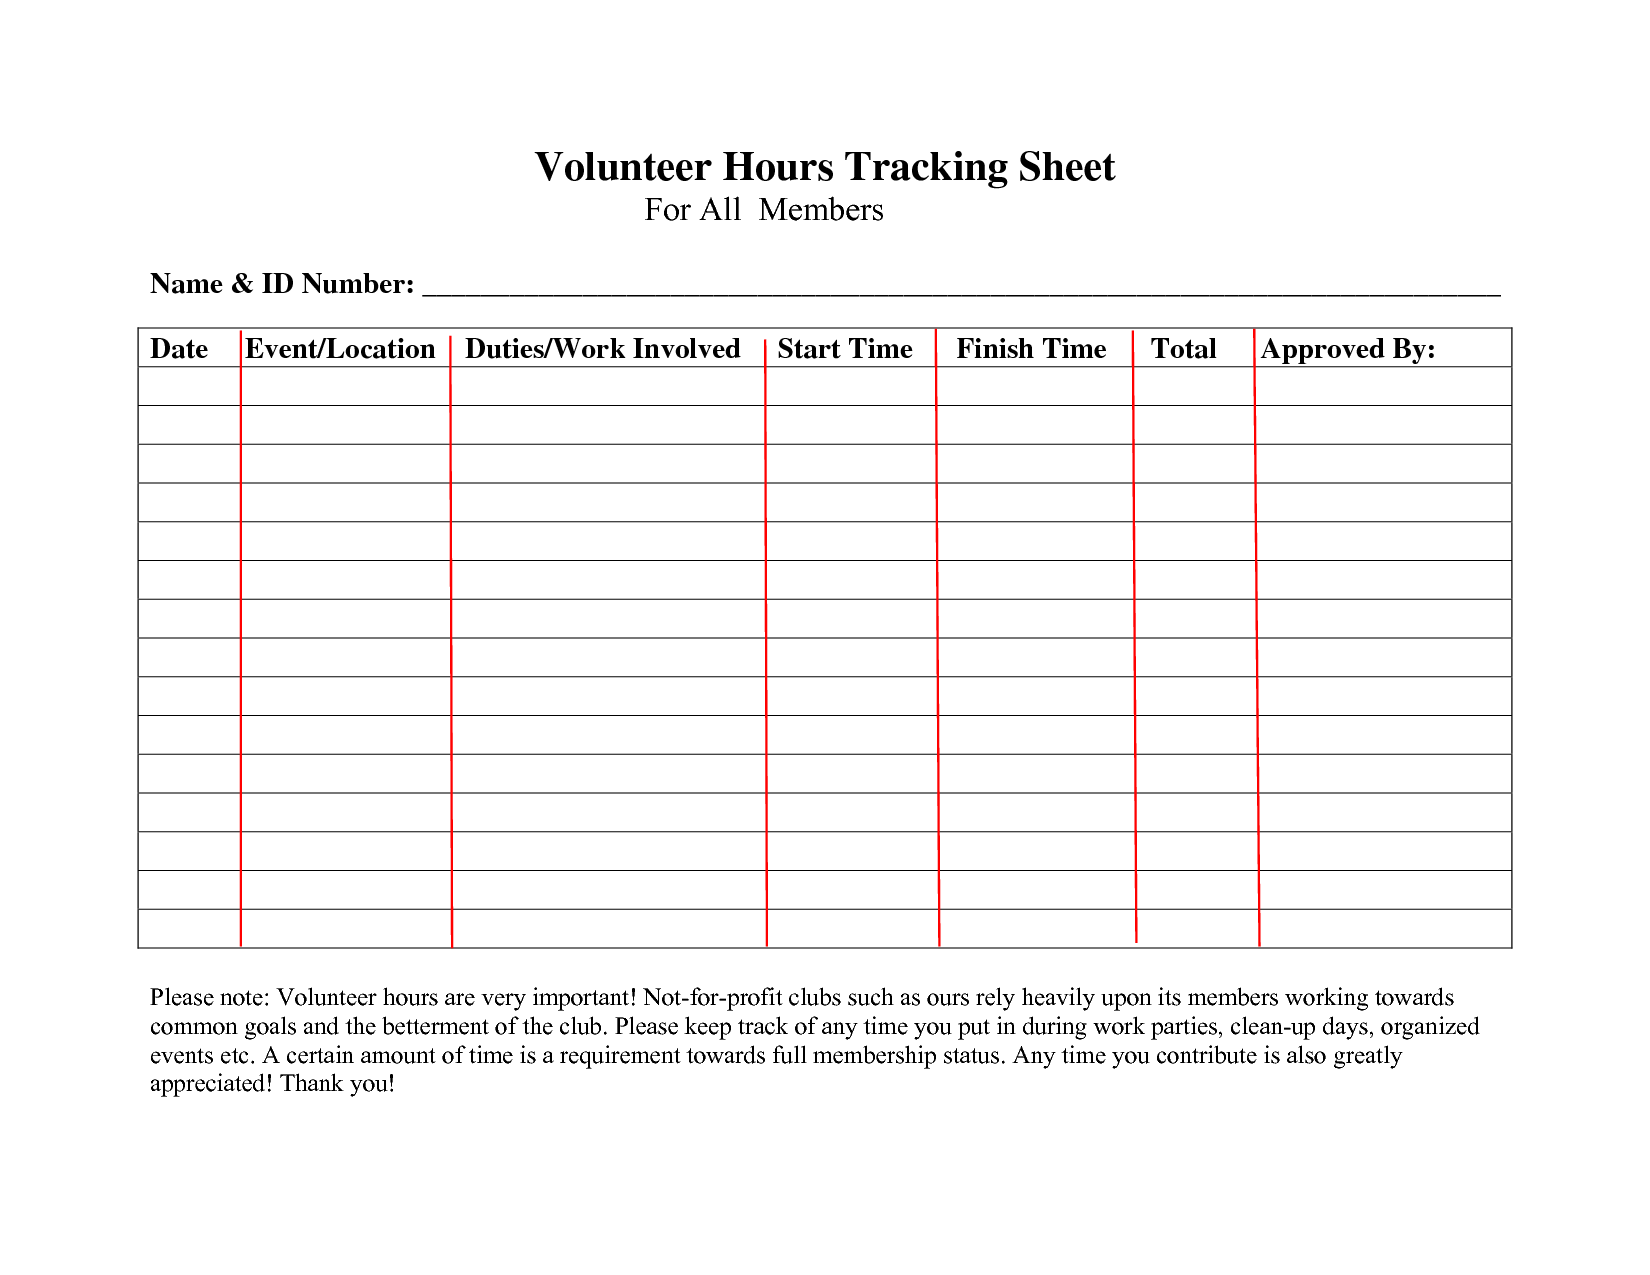 Volunteer Hours Log Sheet Template